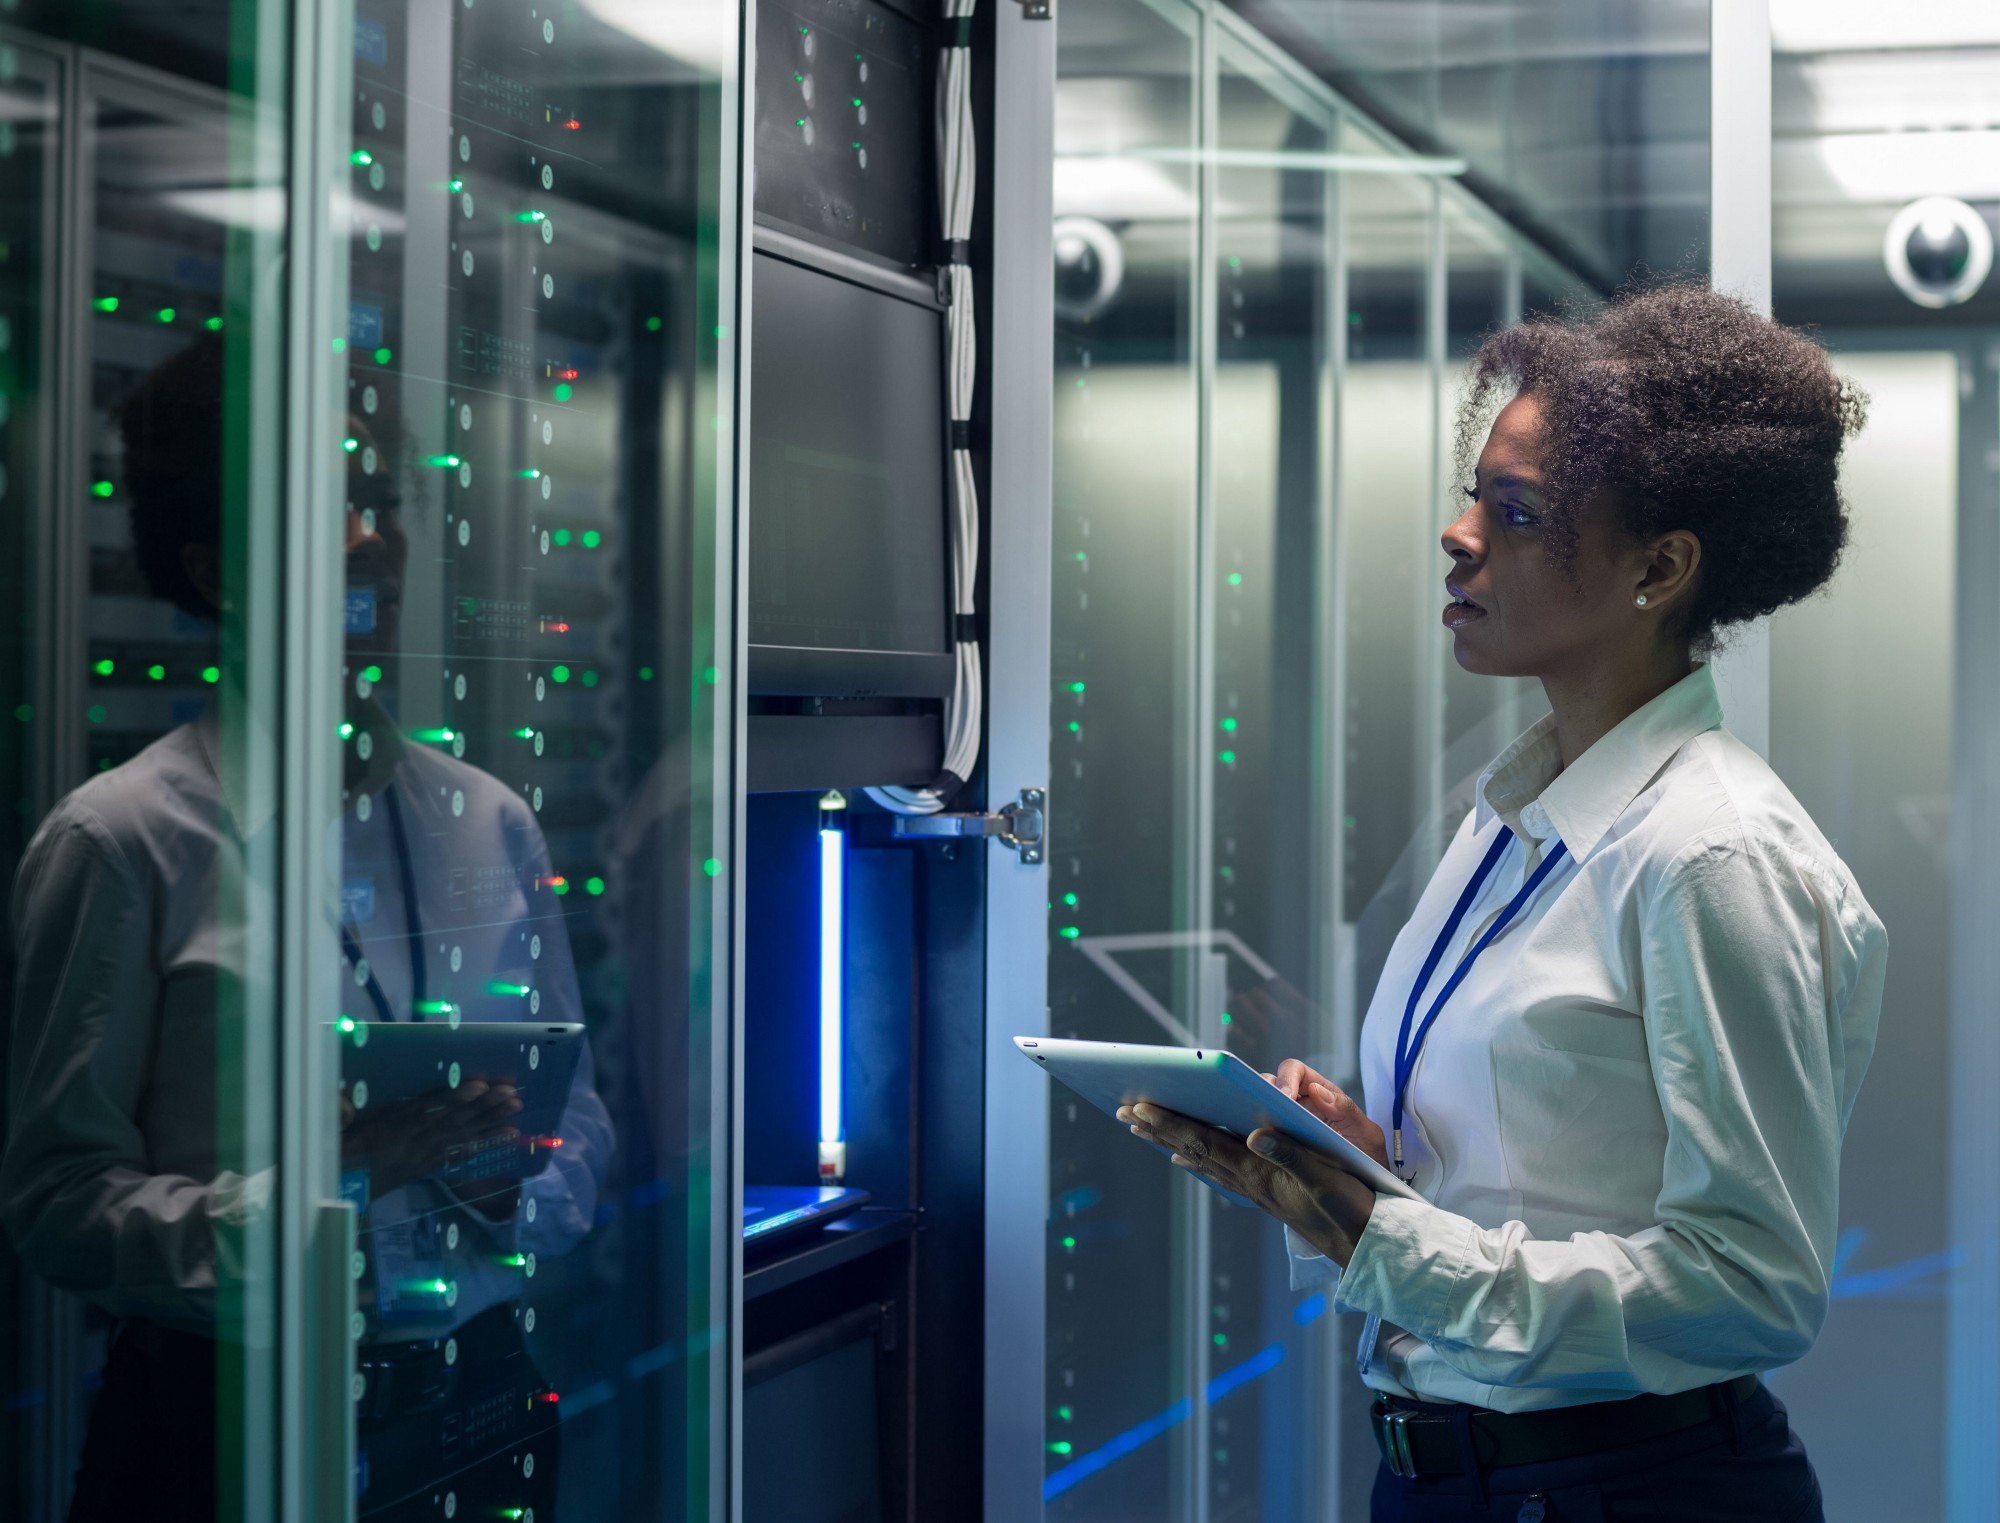 Woman working in a data center